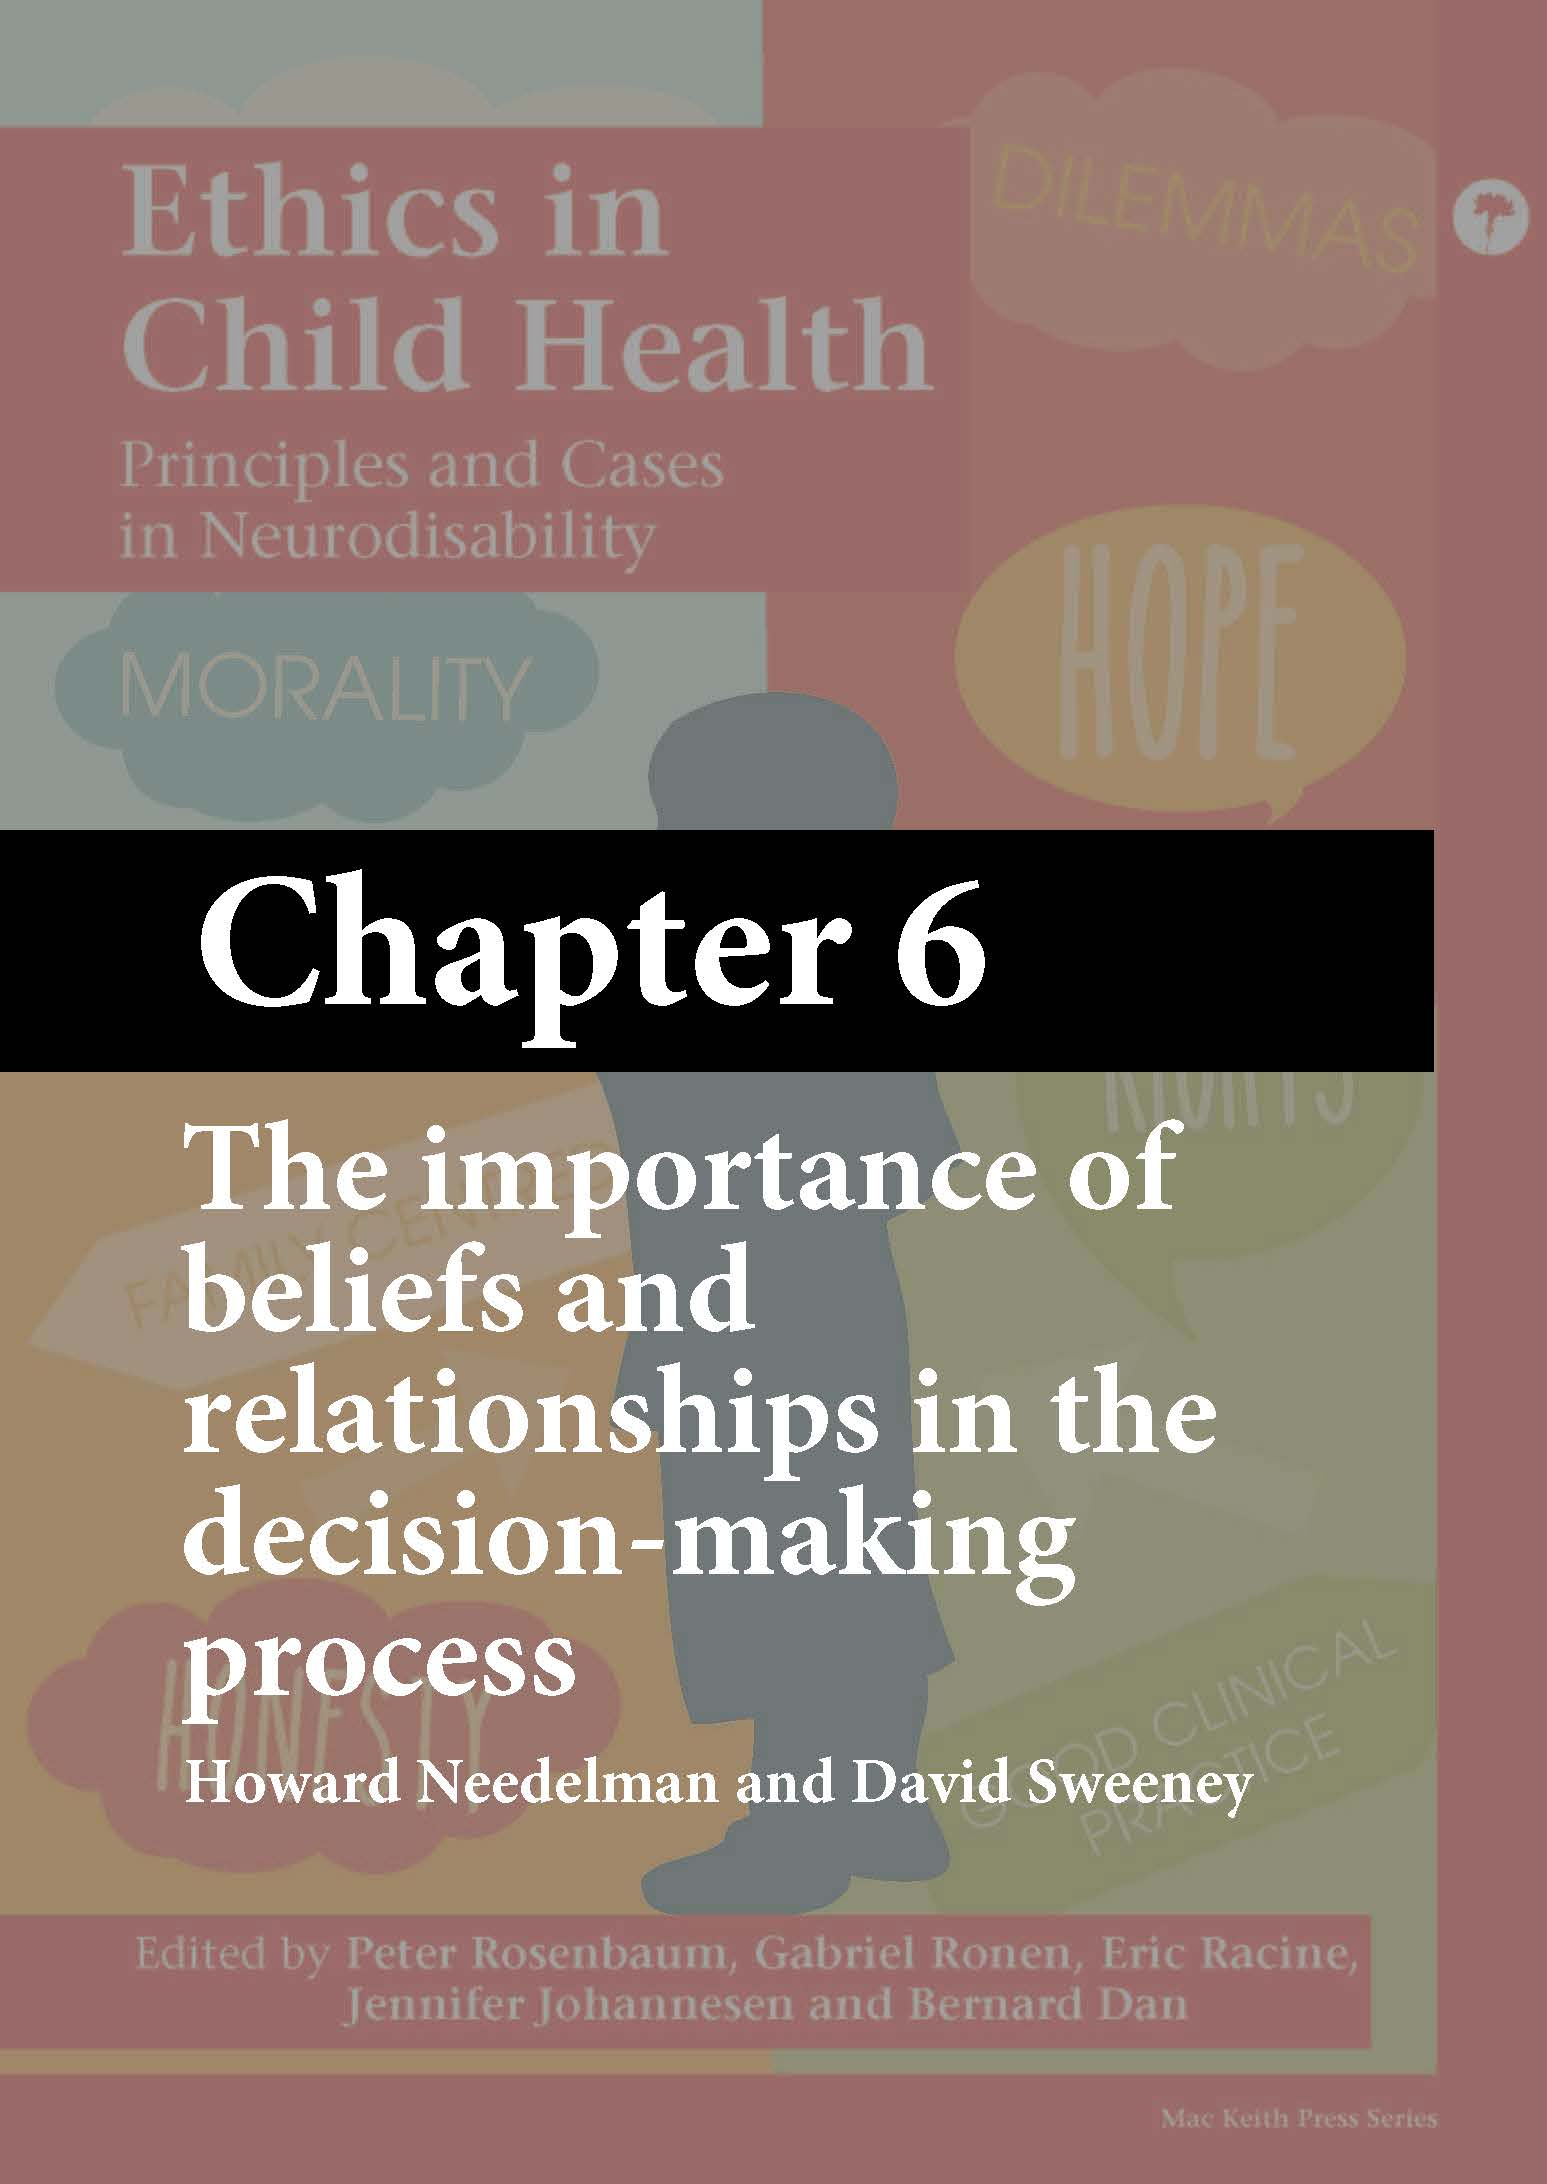 Mac Keith Press book, Ethics in Child Health, Rosenbaum, Chapter 6 cover